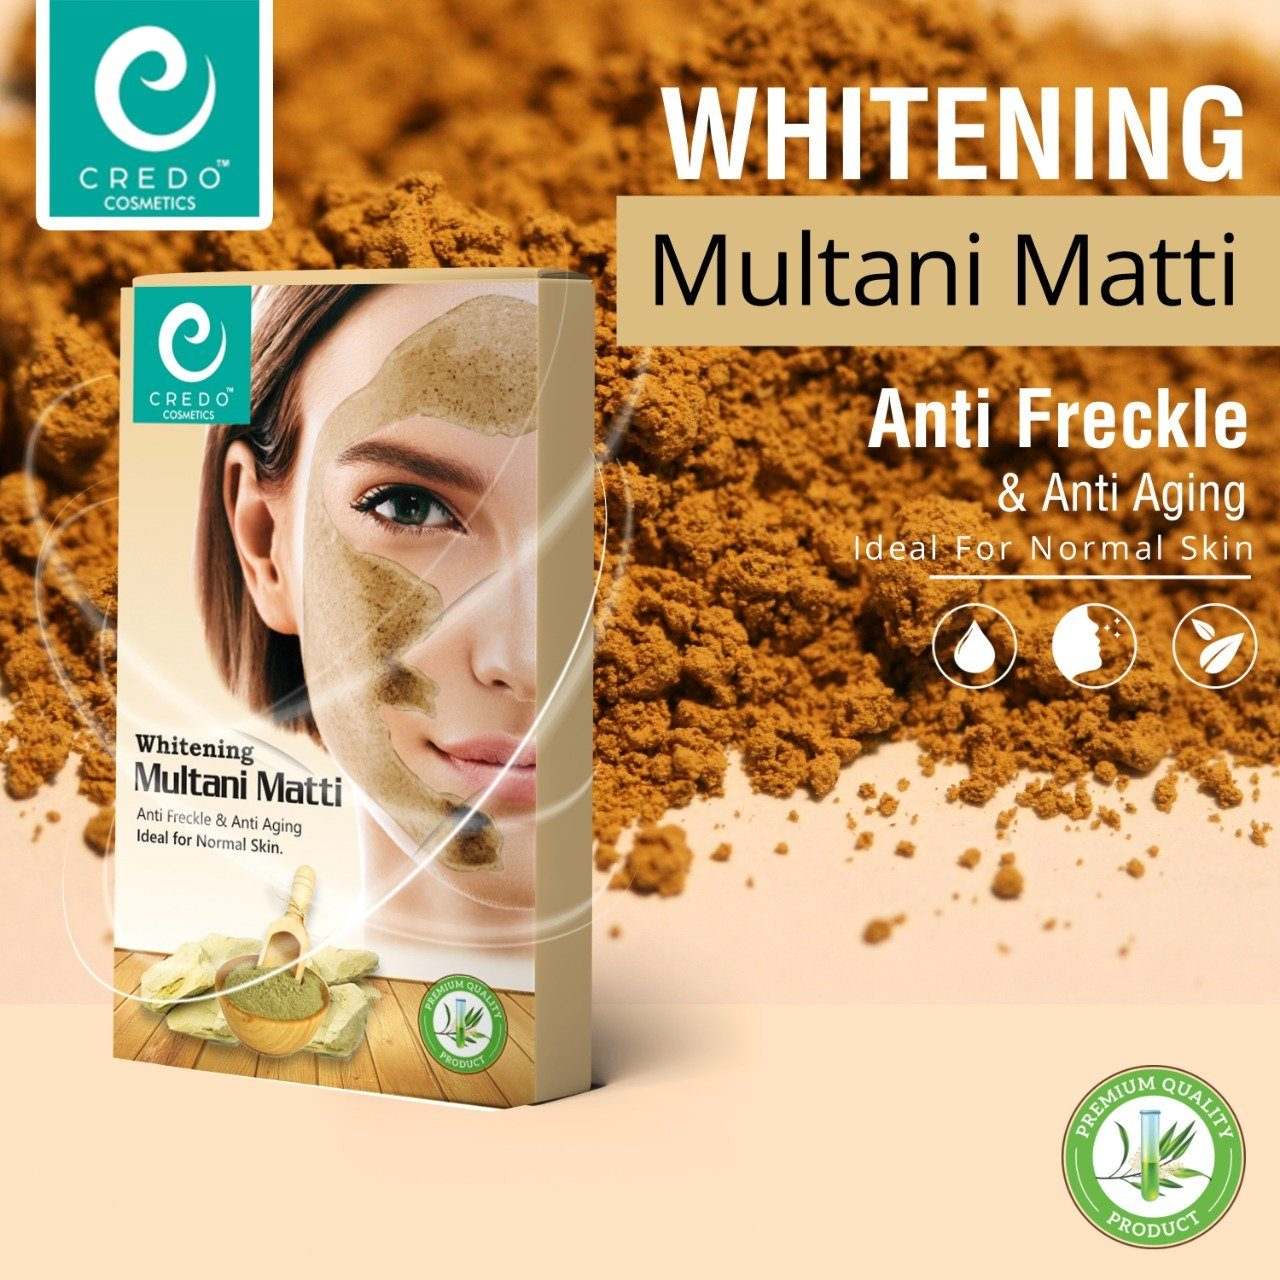 Credo Whitening Multani Matti Health & Beauty Credo Cosmetics